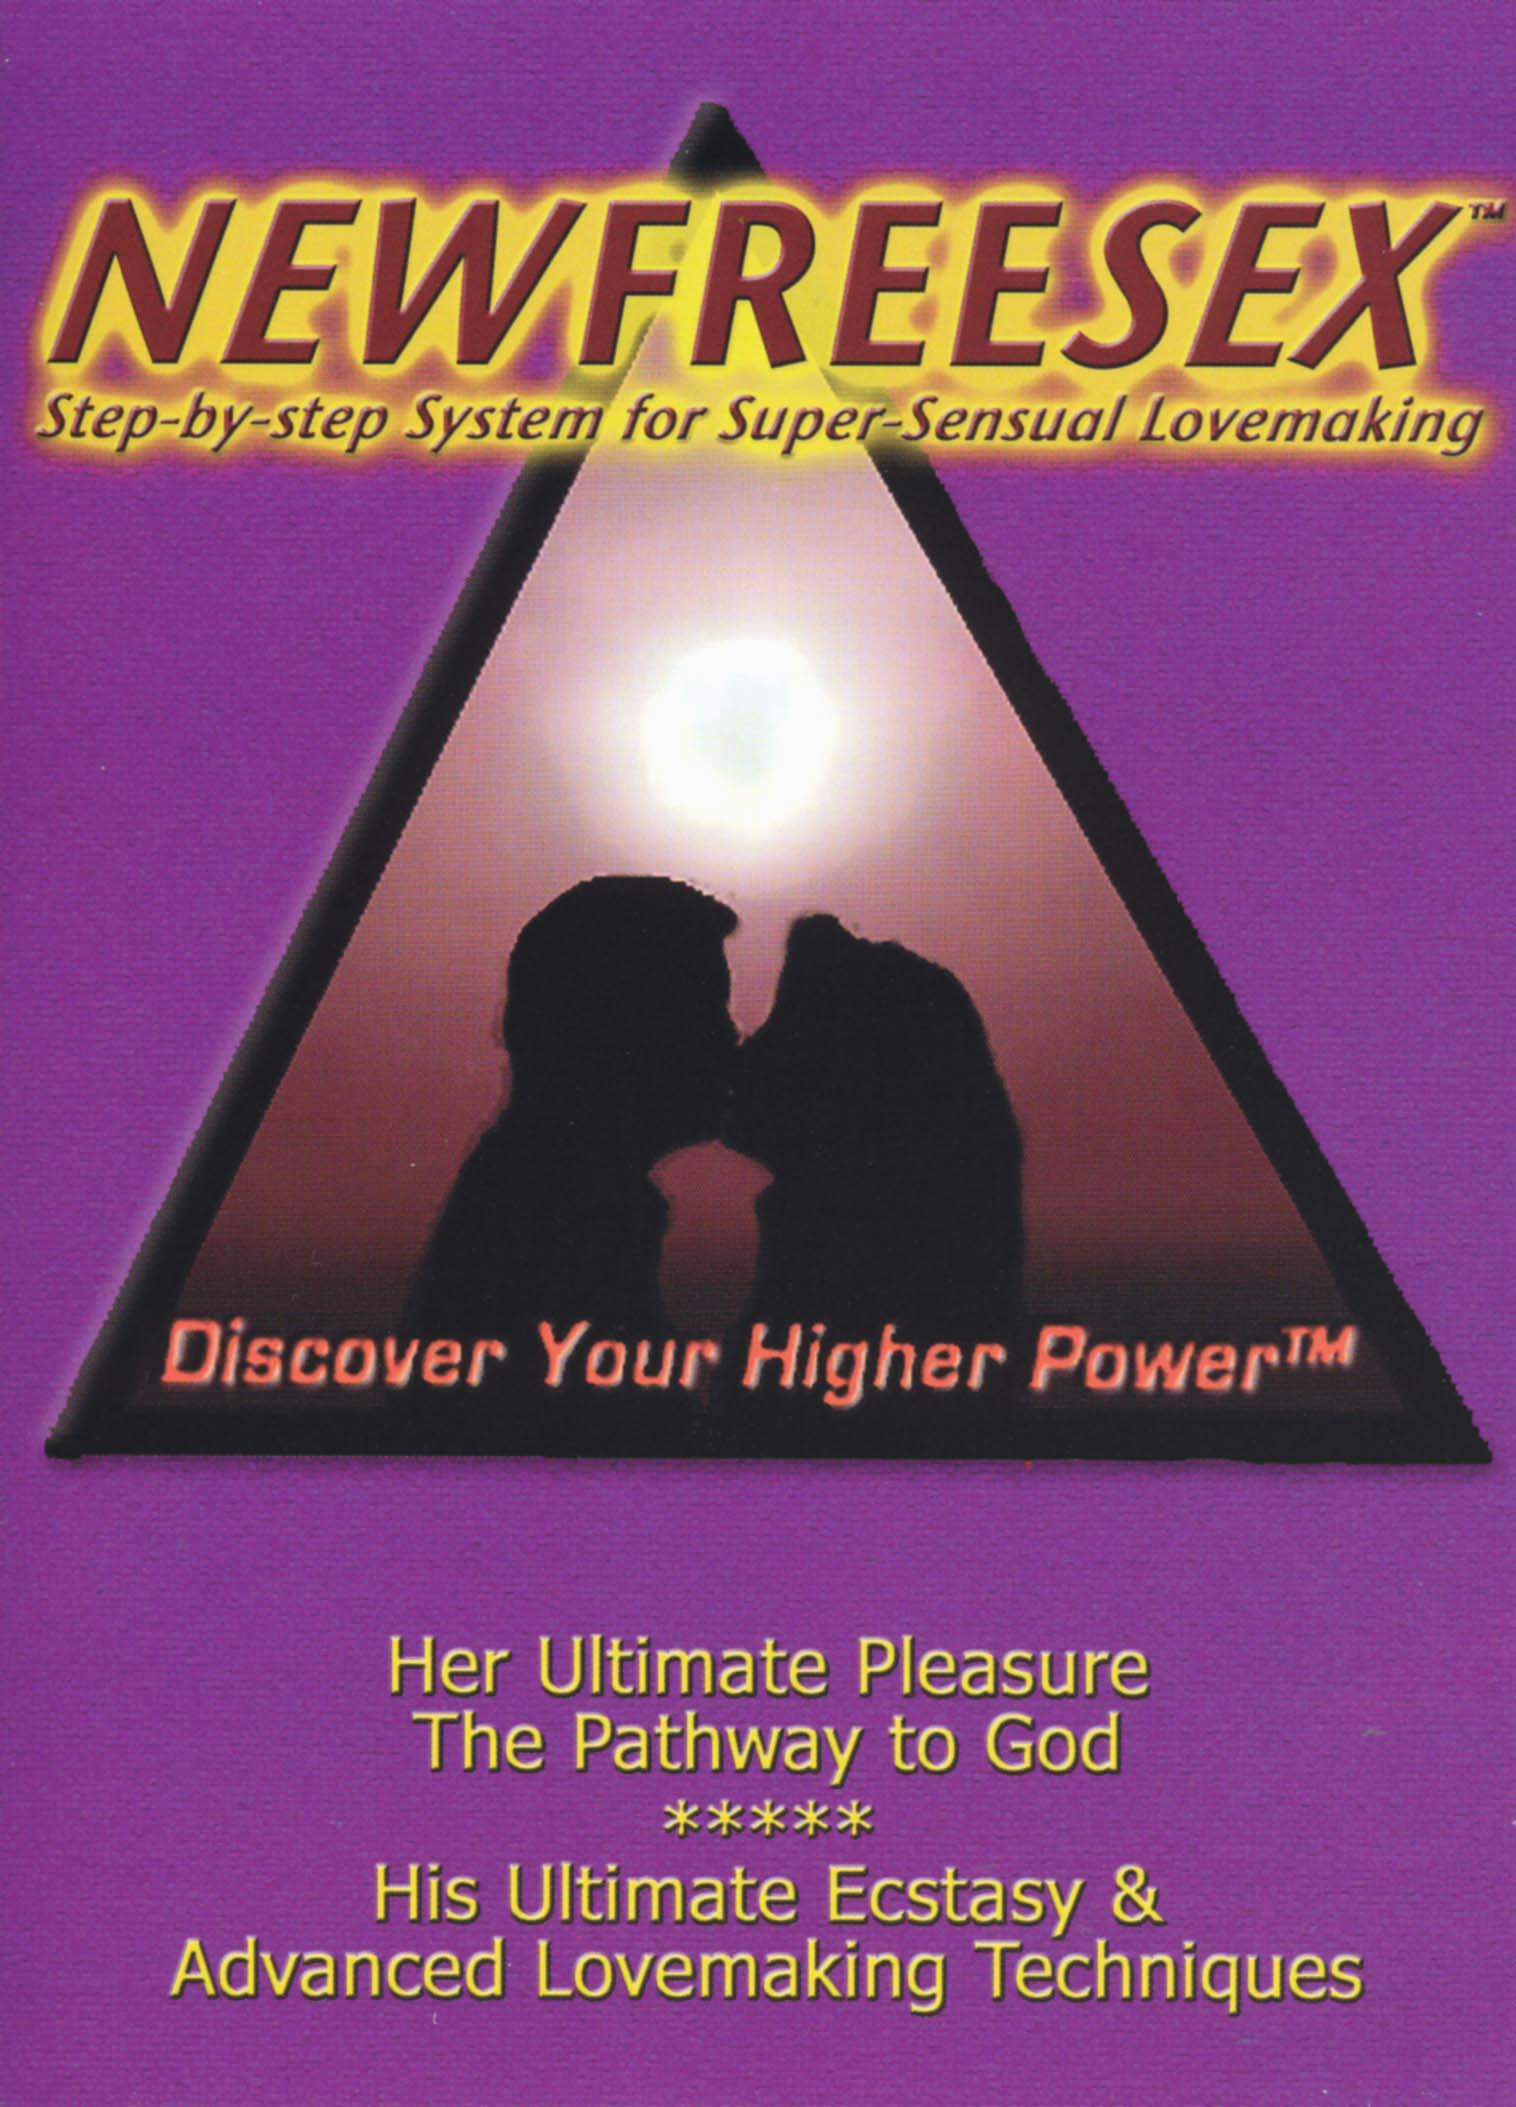 New Free Sex: Step-By-Step System for Super-Sensual Lovemaking